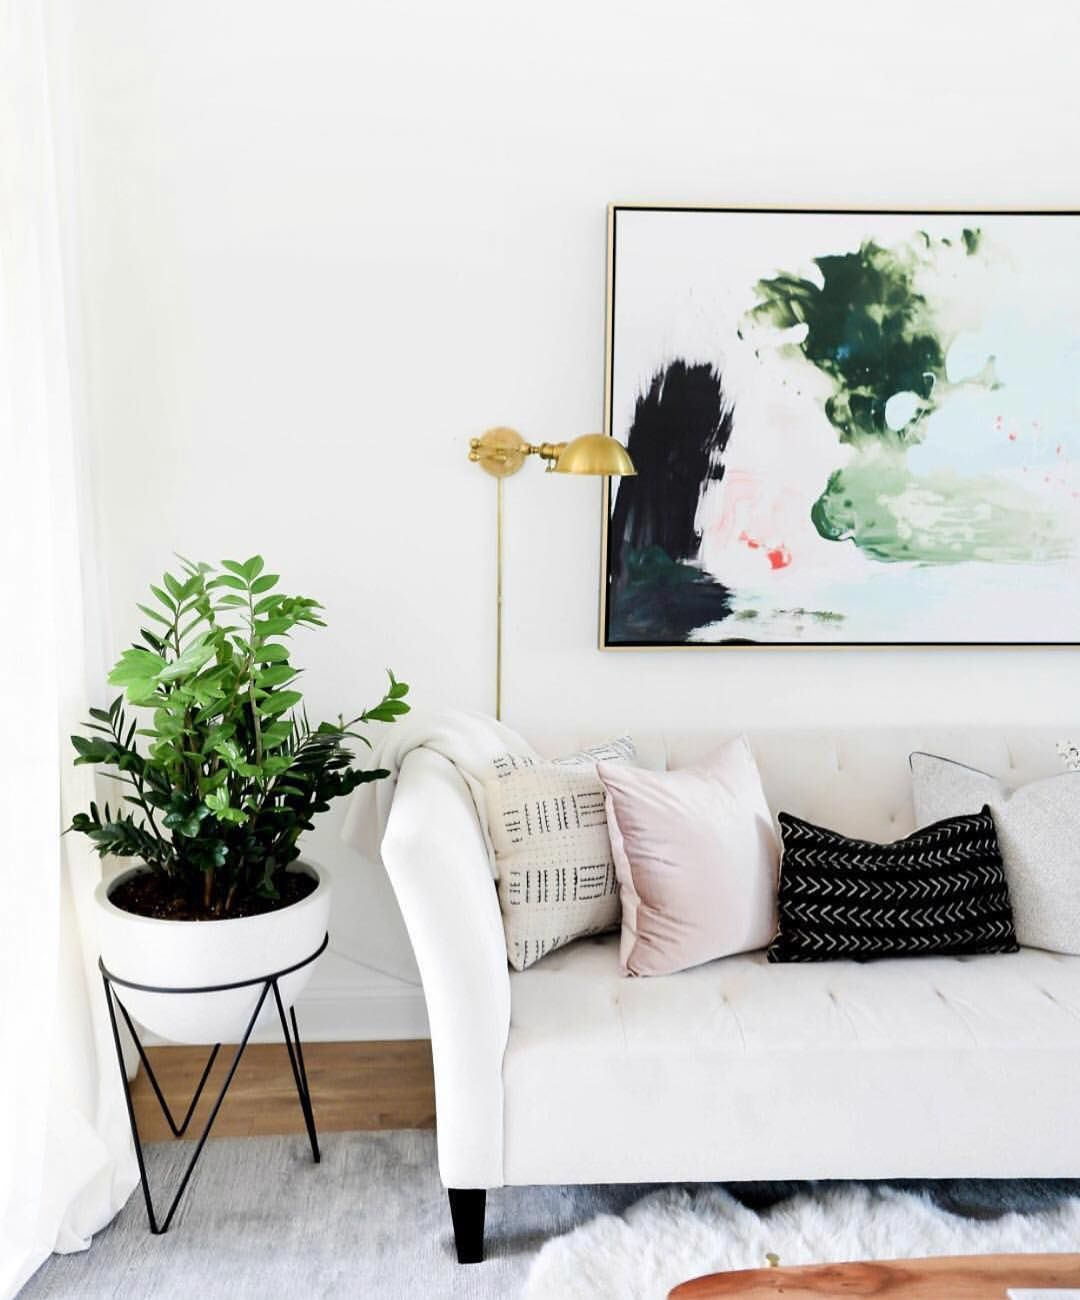 Pin by Opus Grows on plants :: living spaces | Pinterest | Living ...